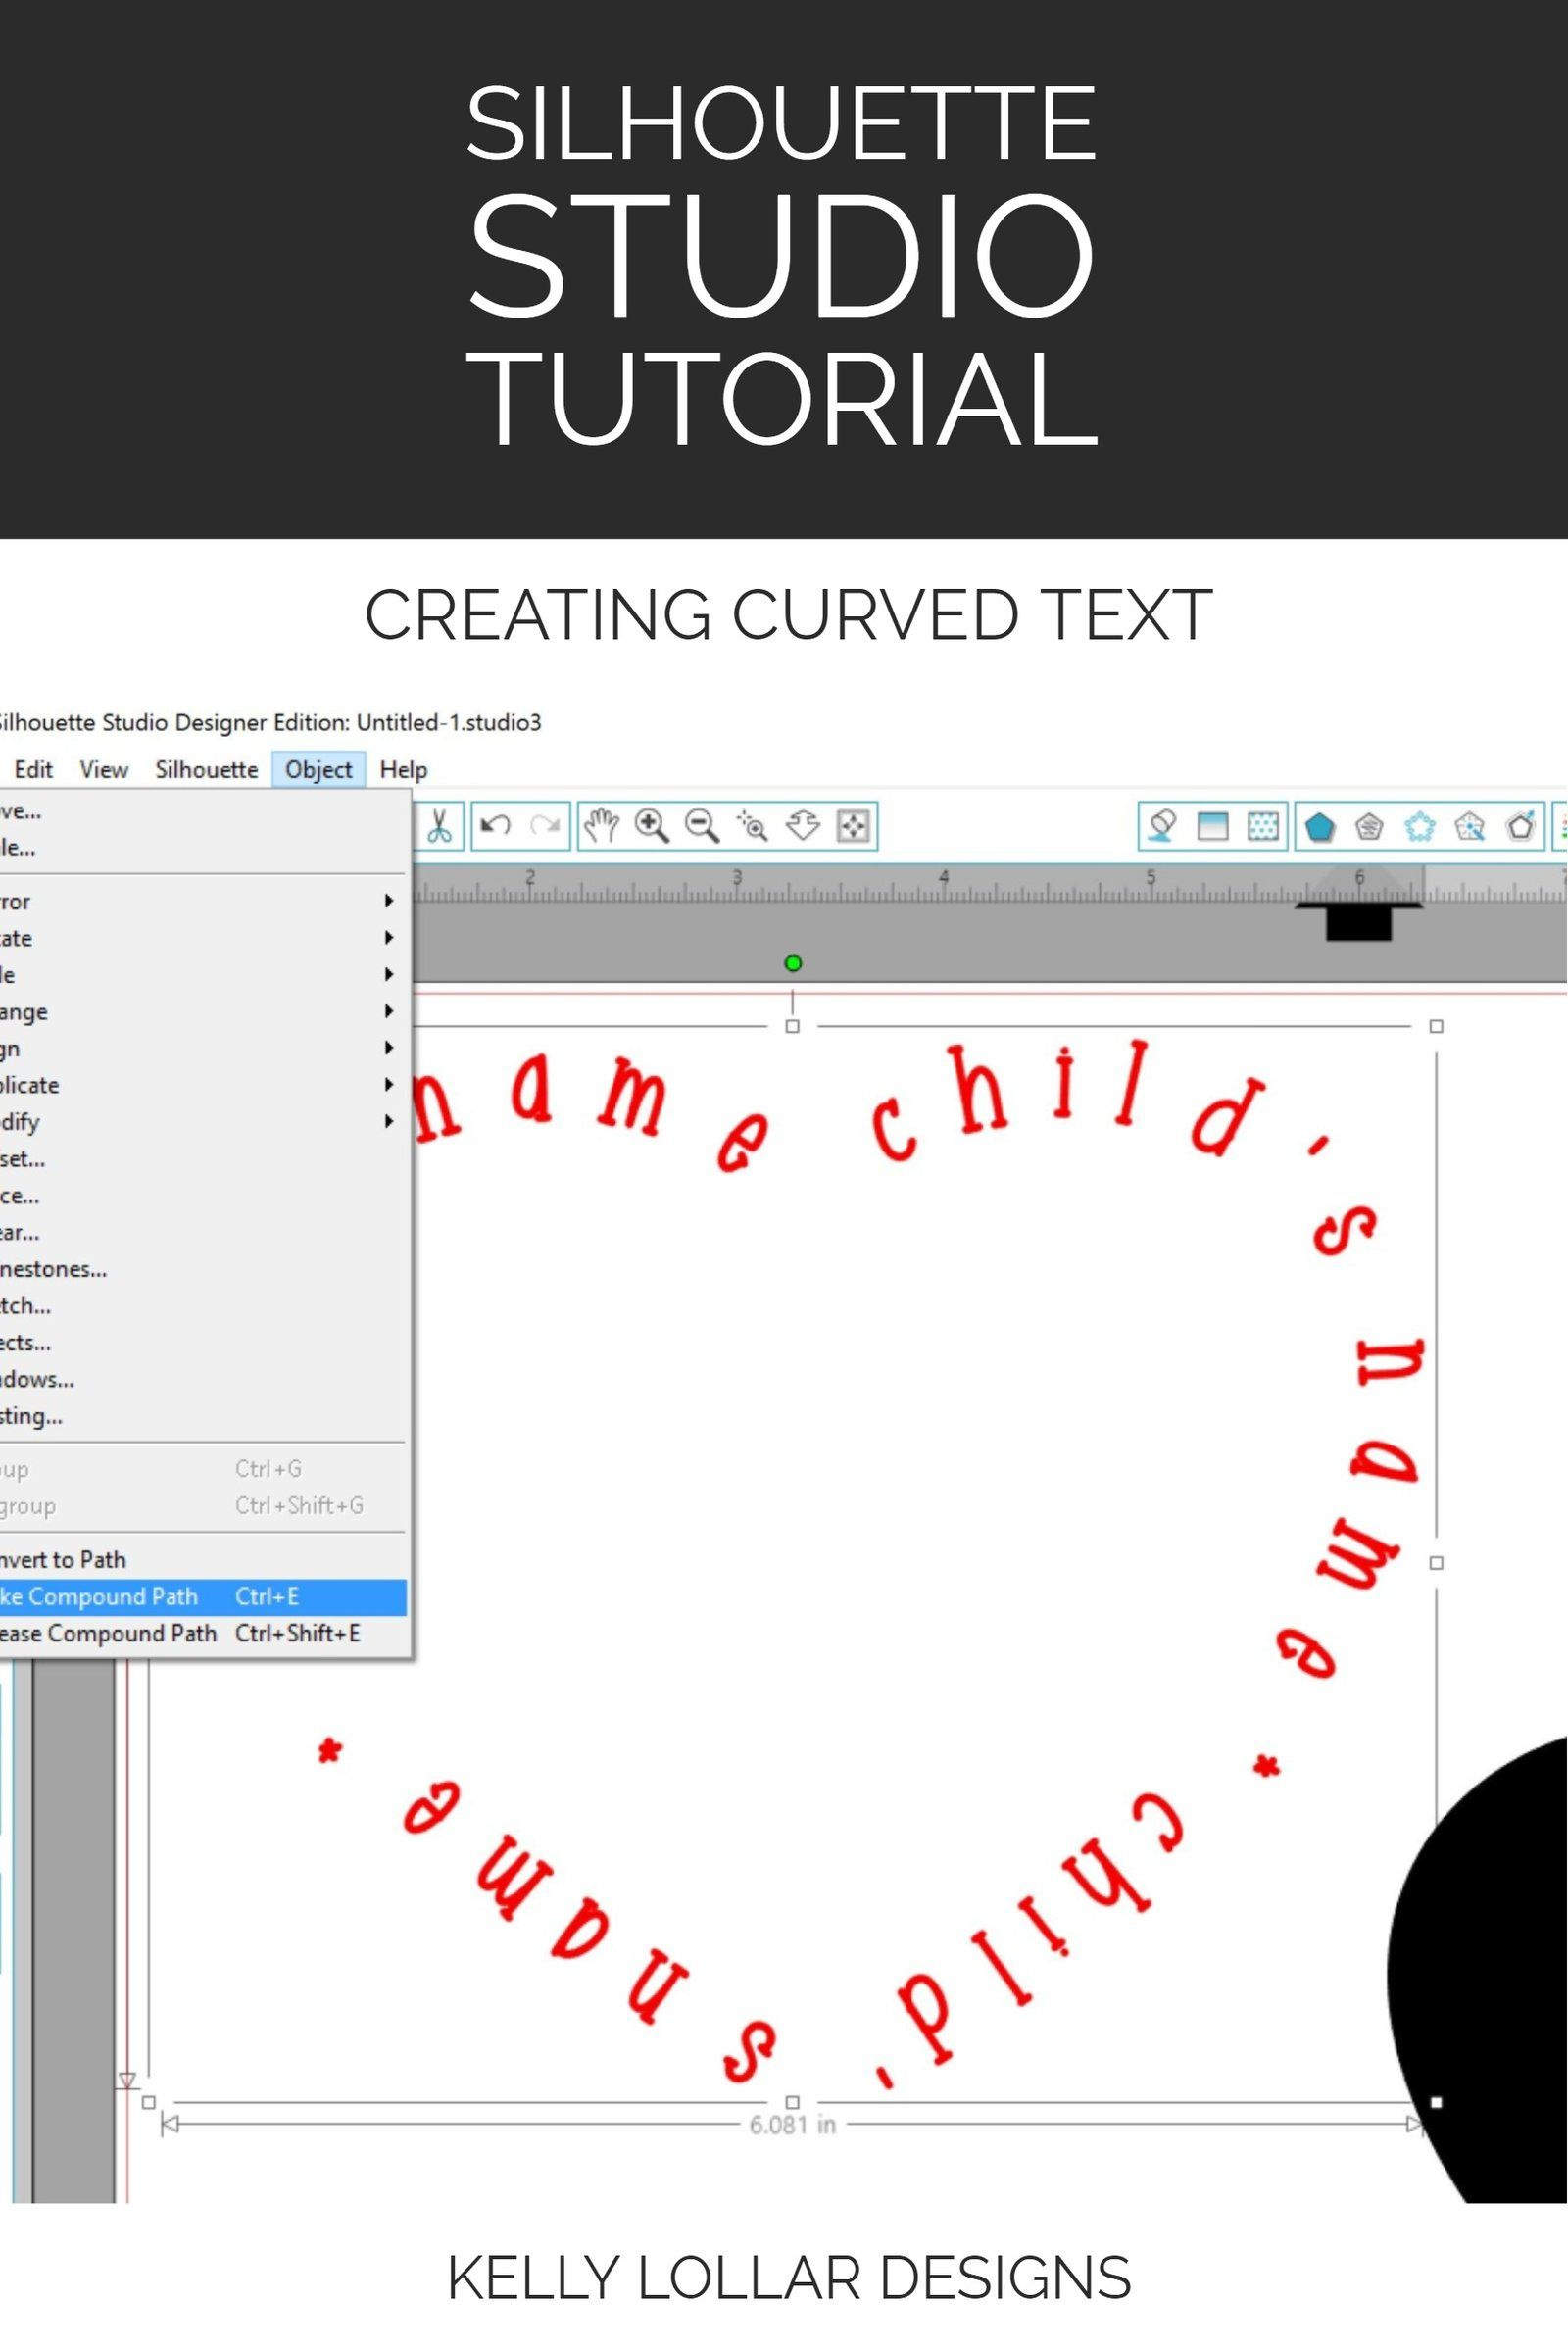 Silhouette Studio Tutorial Placing Text on a Curved Path